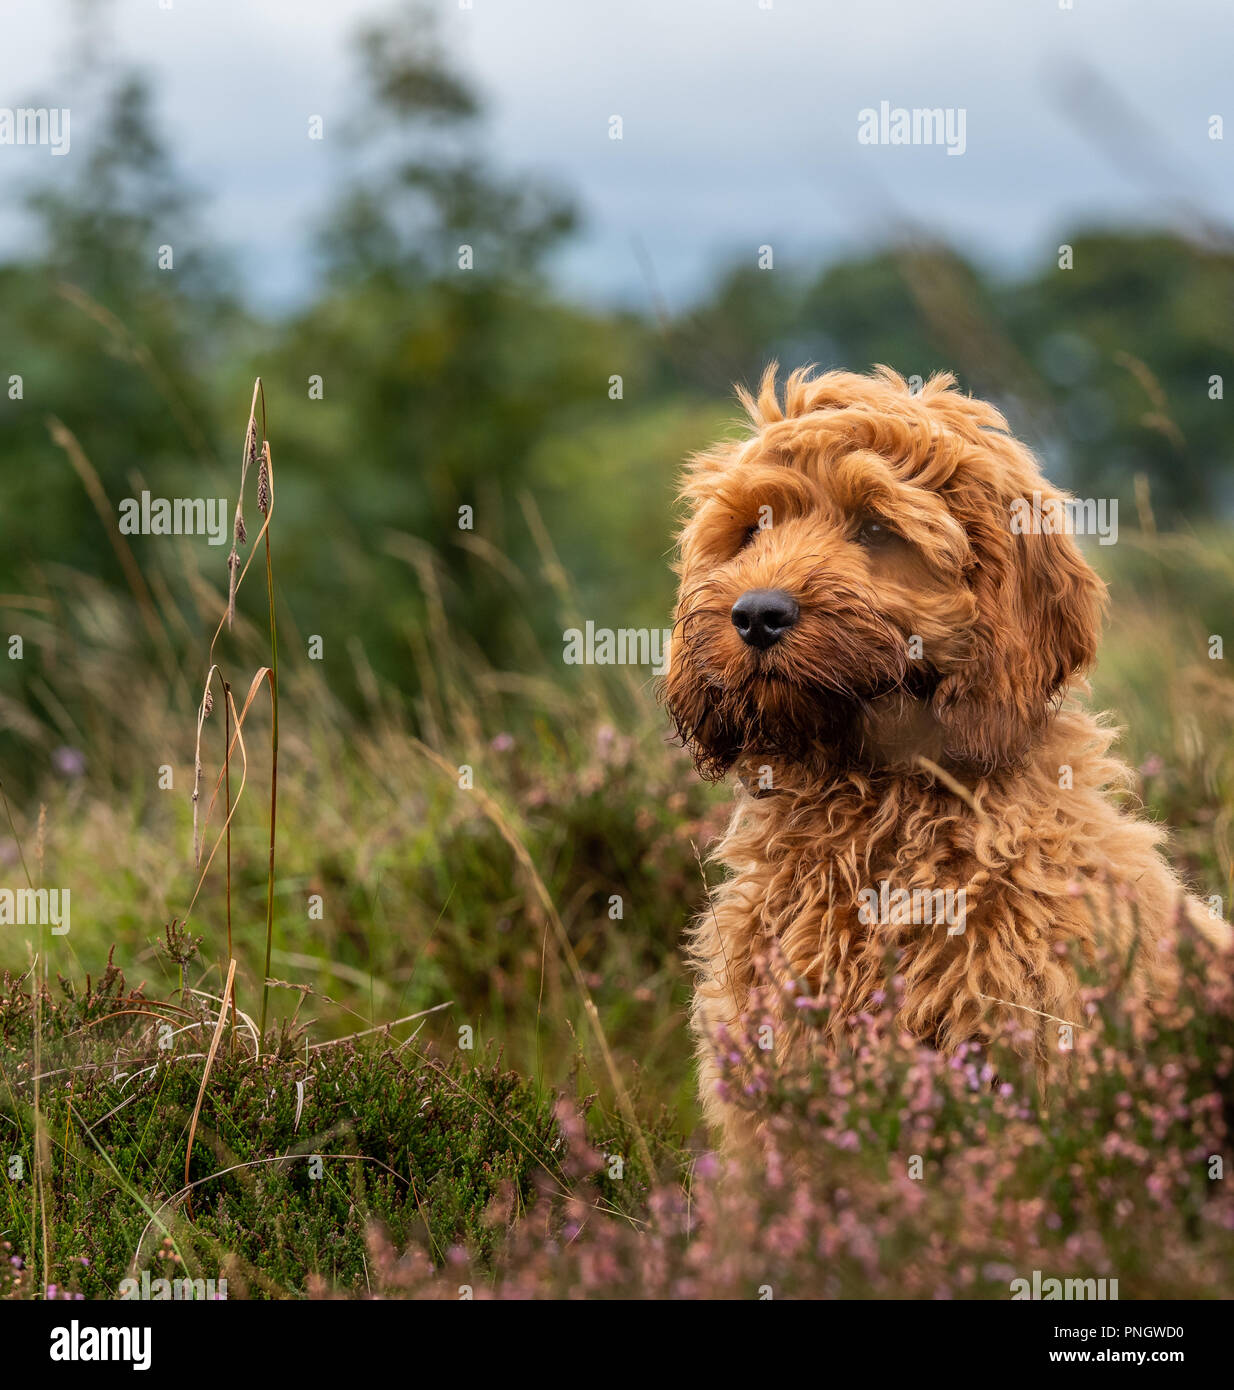 A young red Cockapoo puppy enjoying being amongst the heather in a local moorland area - Stock Image